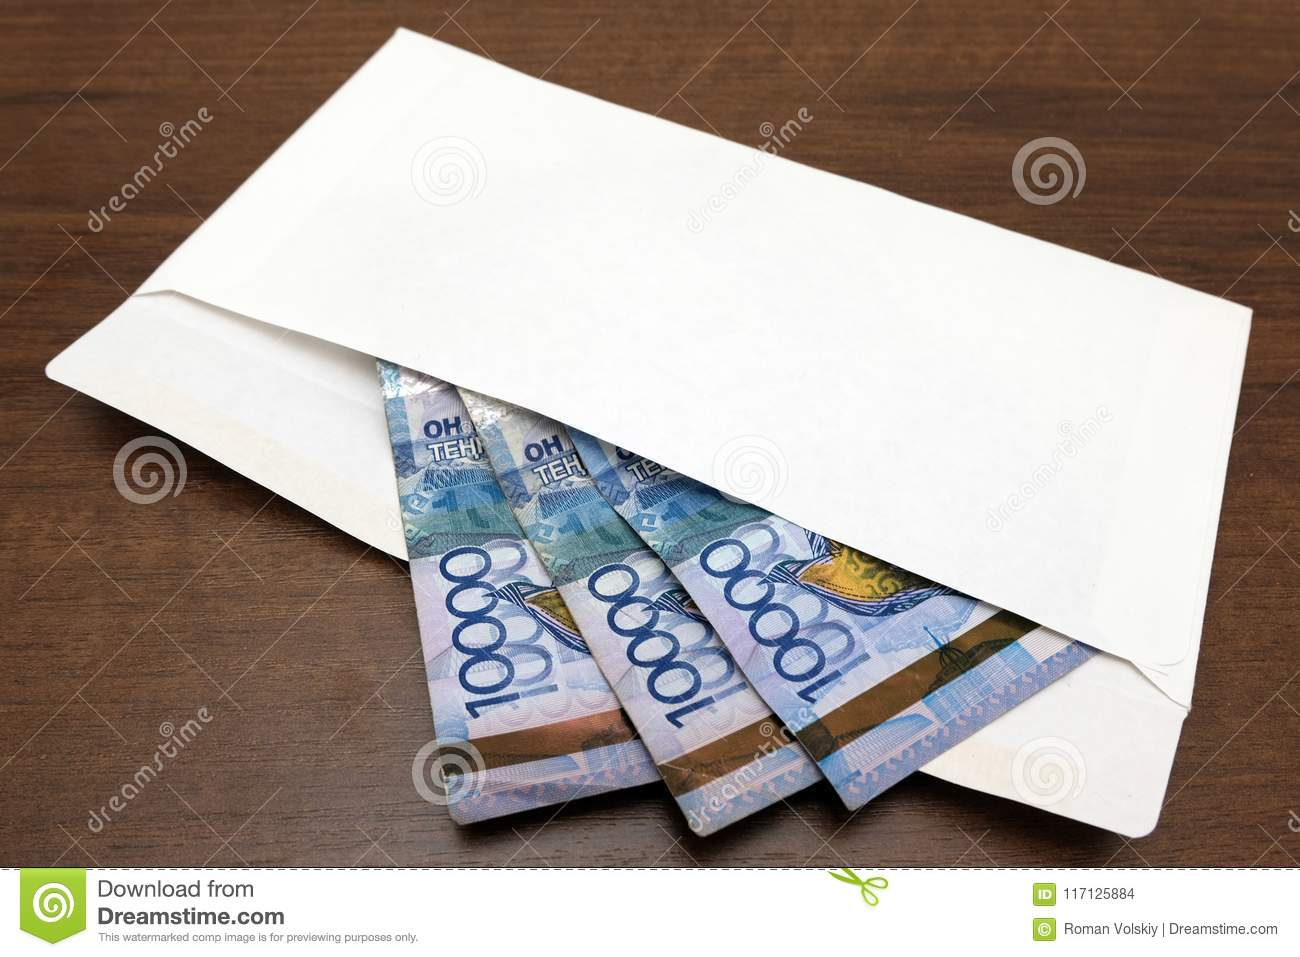 Kazkh money banknotes in a white envelope lie on the table. Thirty thousand tenge are prepared for a gift or a bribe. The concept